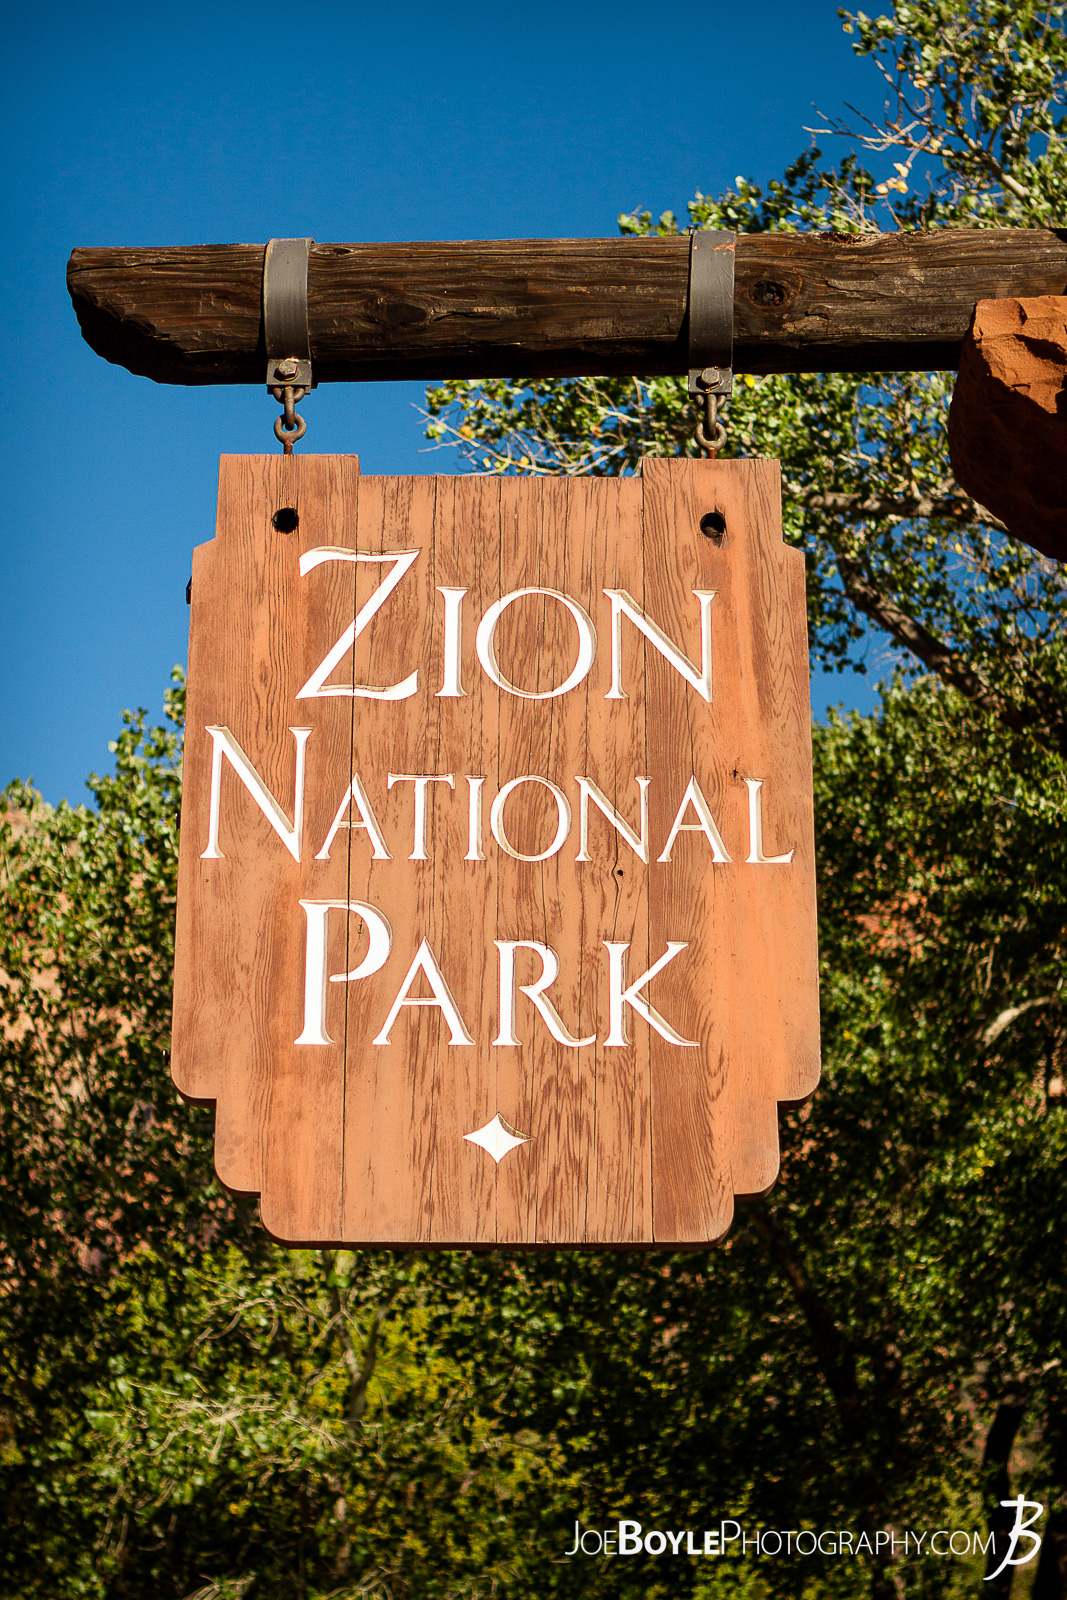 Here is a photo of the sign at the entrance of Zion National Park with a beautiful blue sky!  Here are some links to more articles and hiking info about the West Rim Trail and hiking trails in Zion National Park and a Map of Zion National Park.